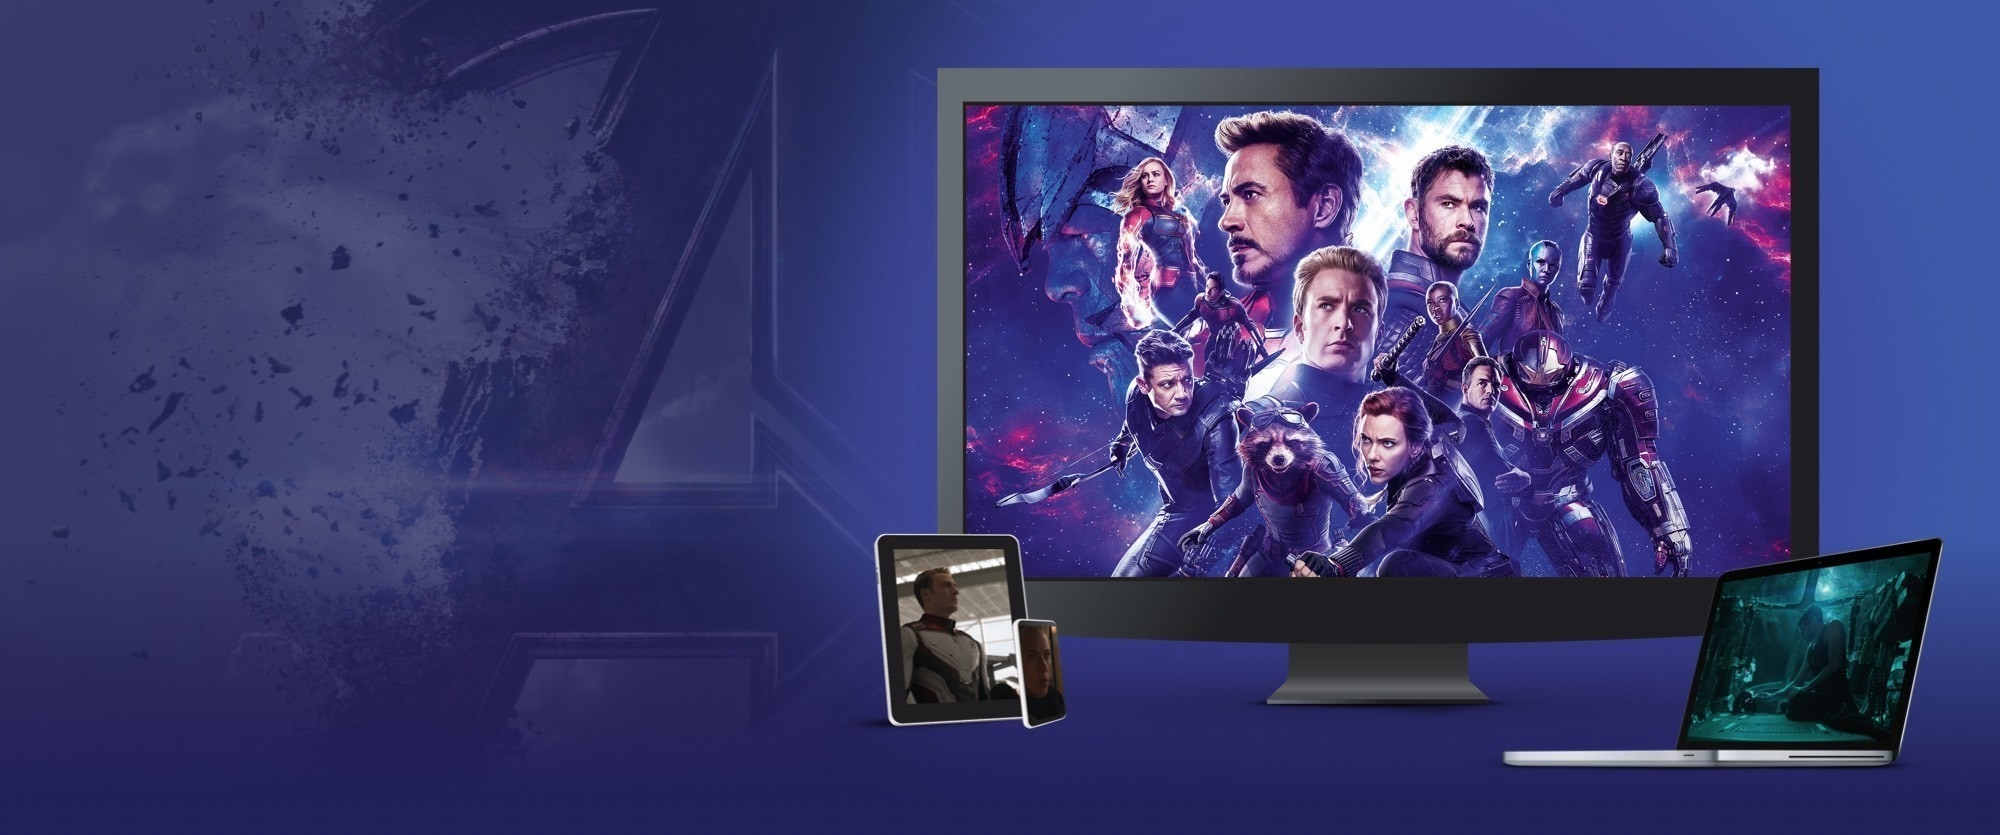 Download and keep Avengers: Endgame